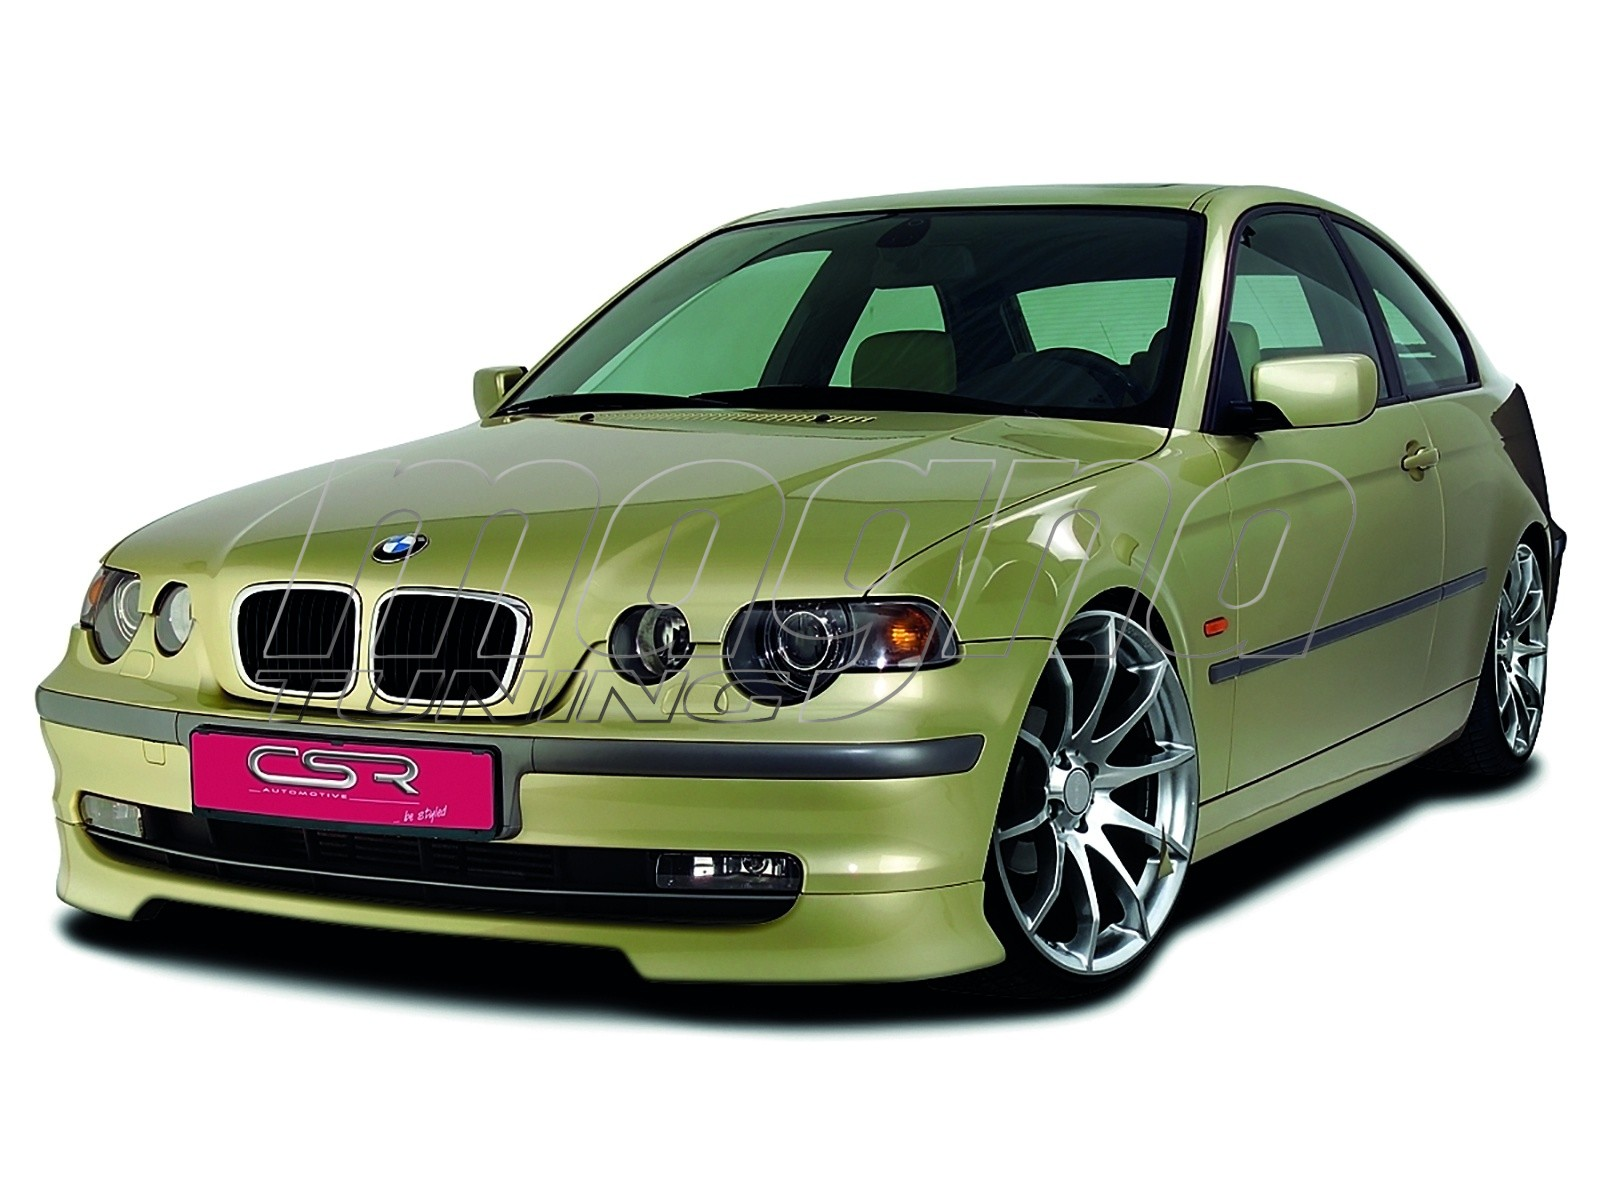 bmw e46 compact xl frontansatz. Black Bedroom Furniture Sets. Home Design Ideas